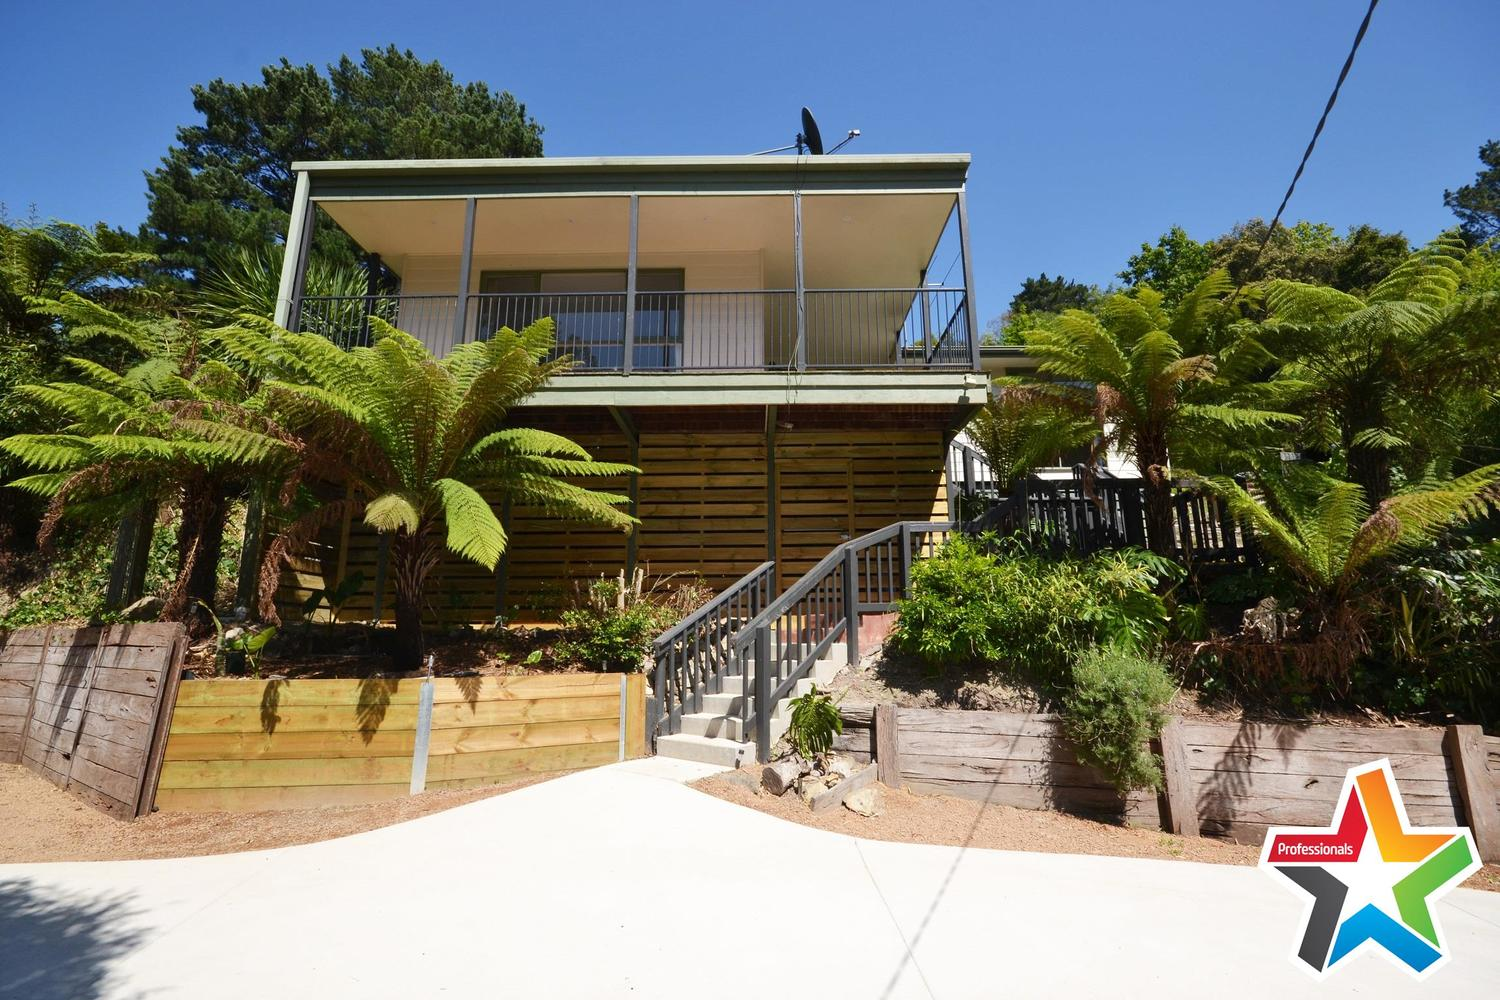 Property Report for 10 Railway Road, Mount Evelyn VIC 3796